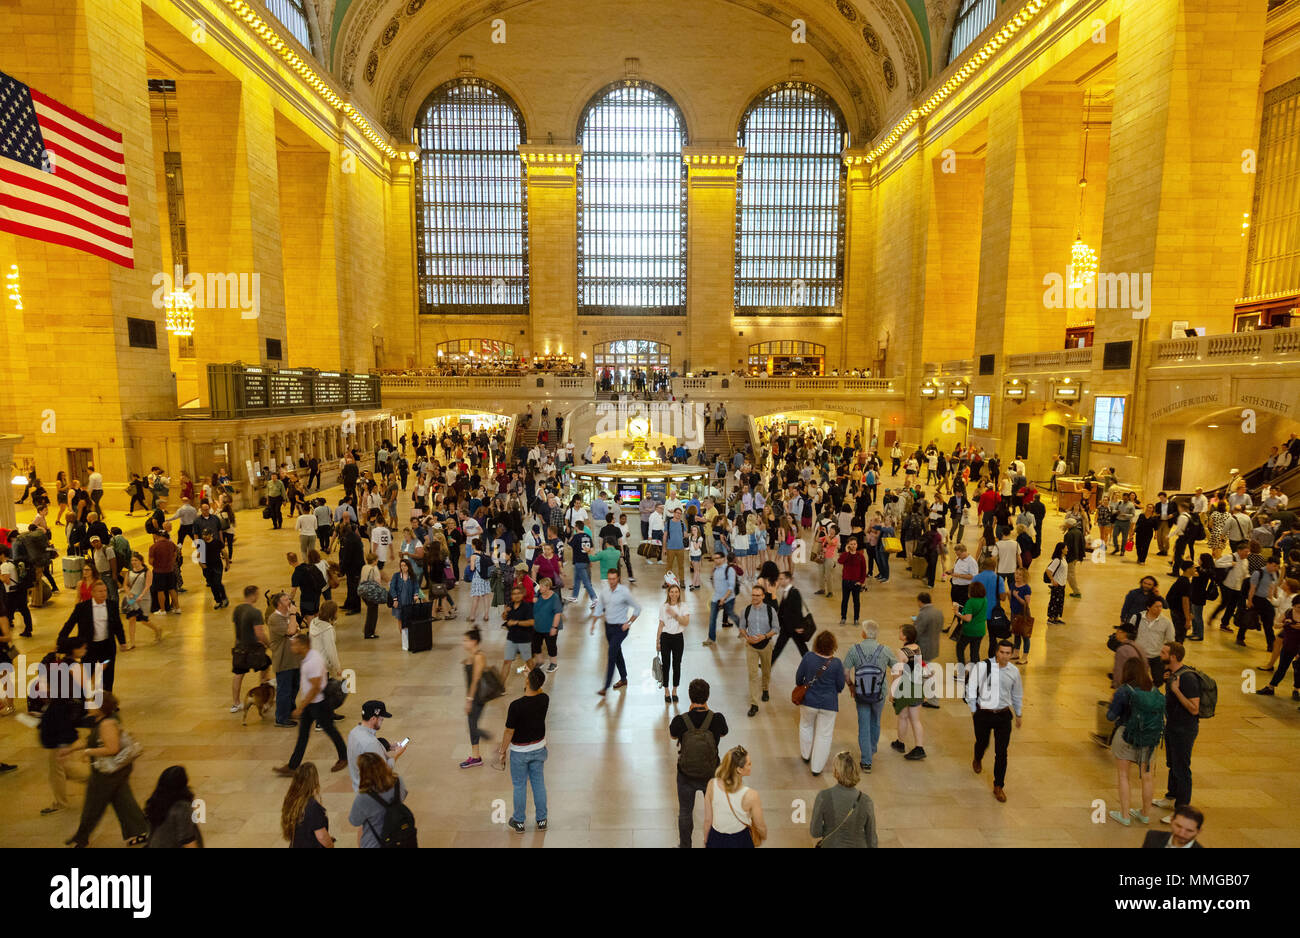 Grand Central Station interior, with crowds of people at rush hour, Grand Central Station, New York City, USA - Stock Image